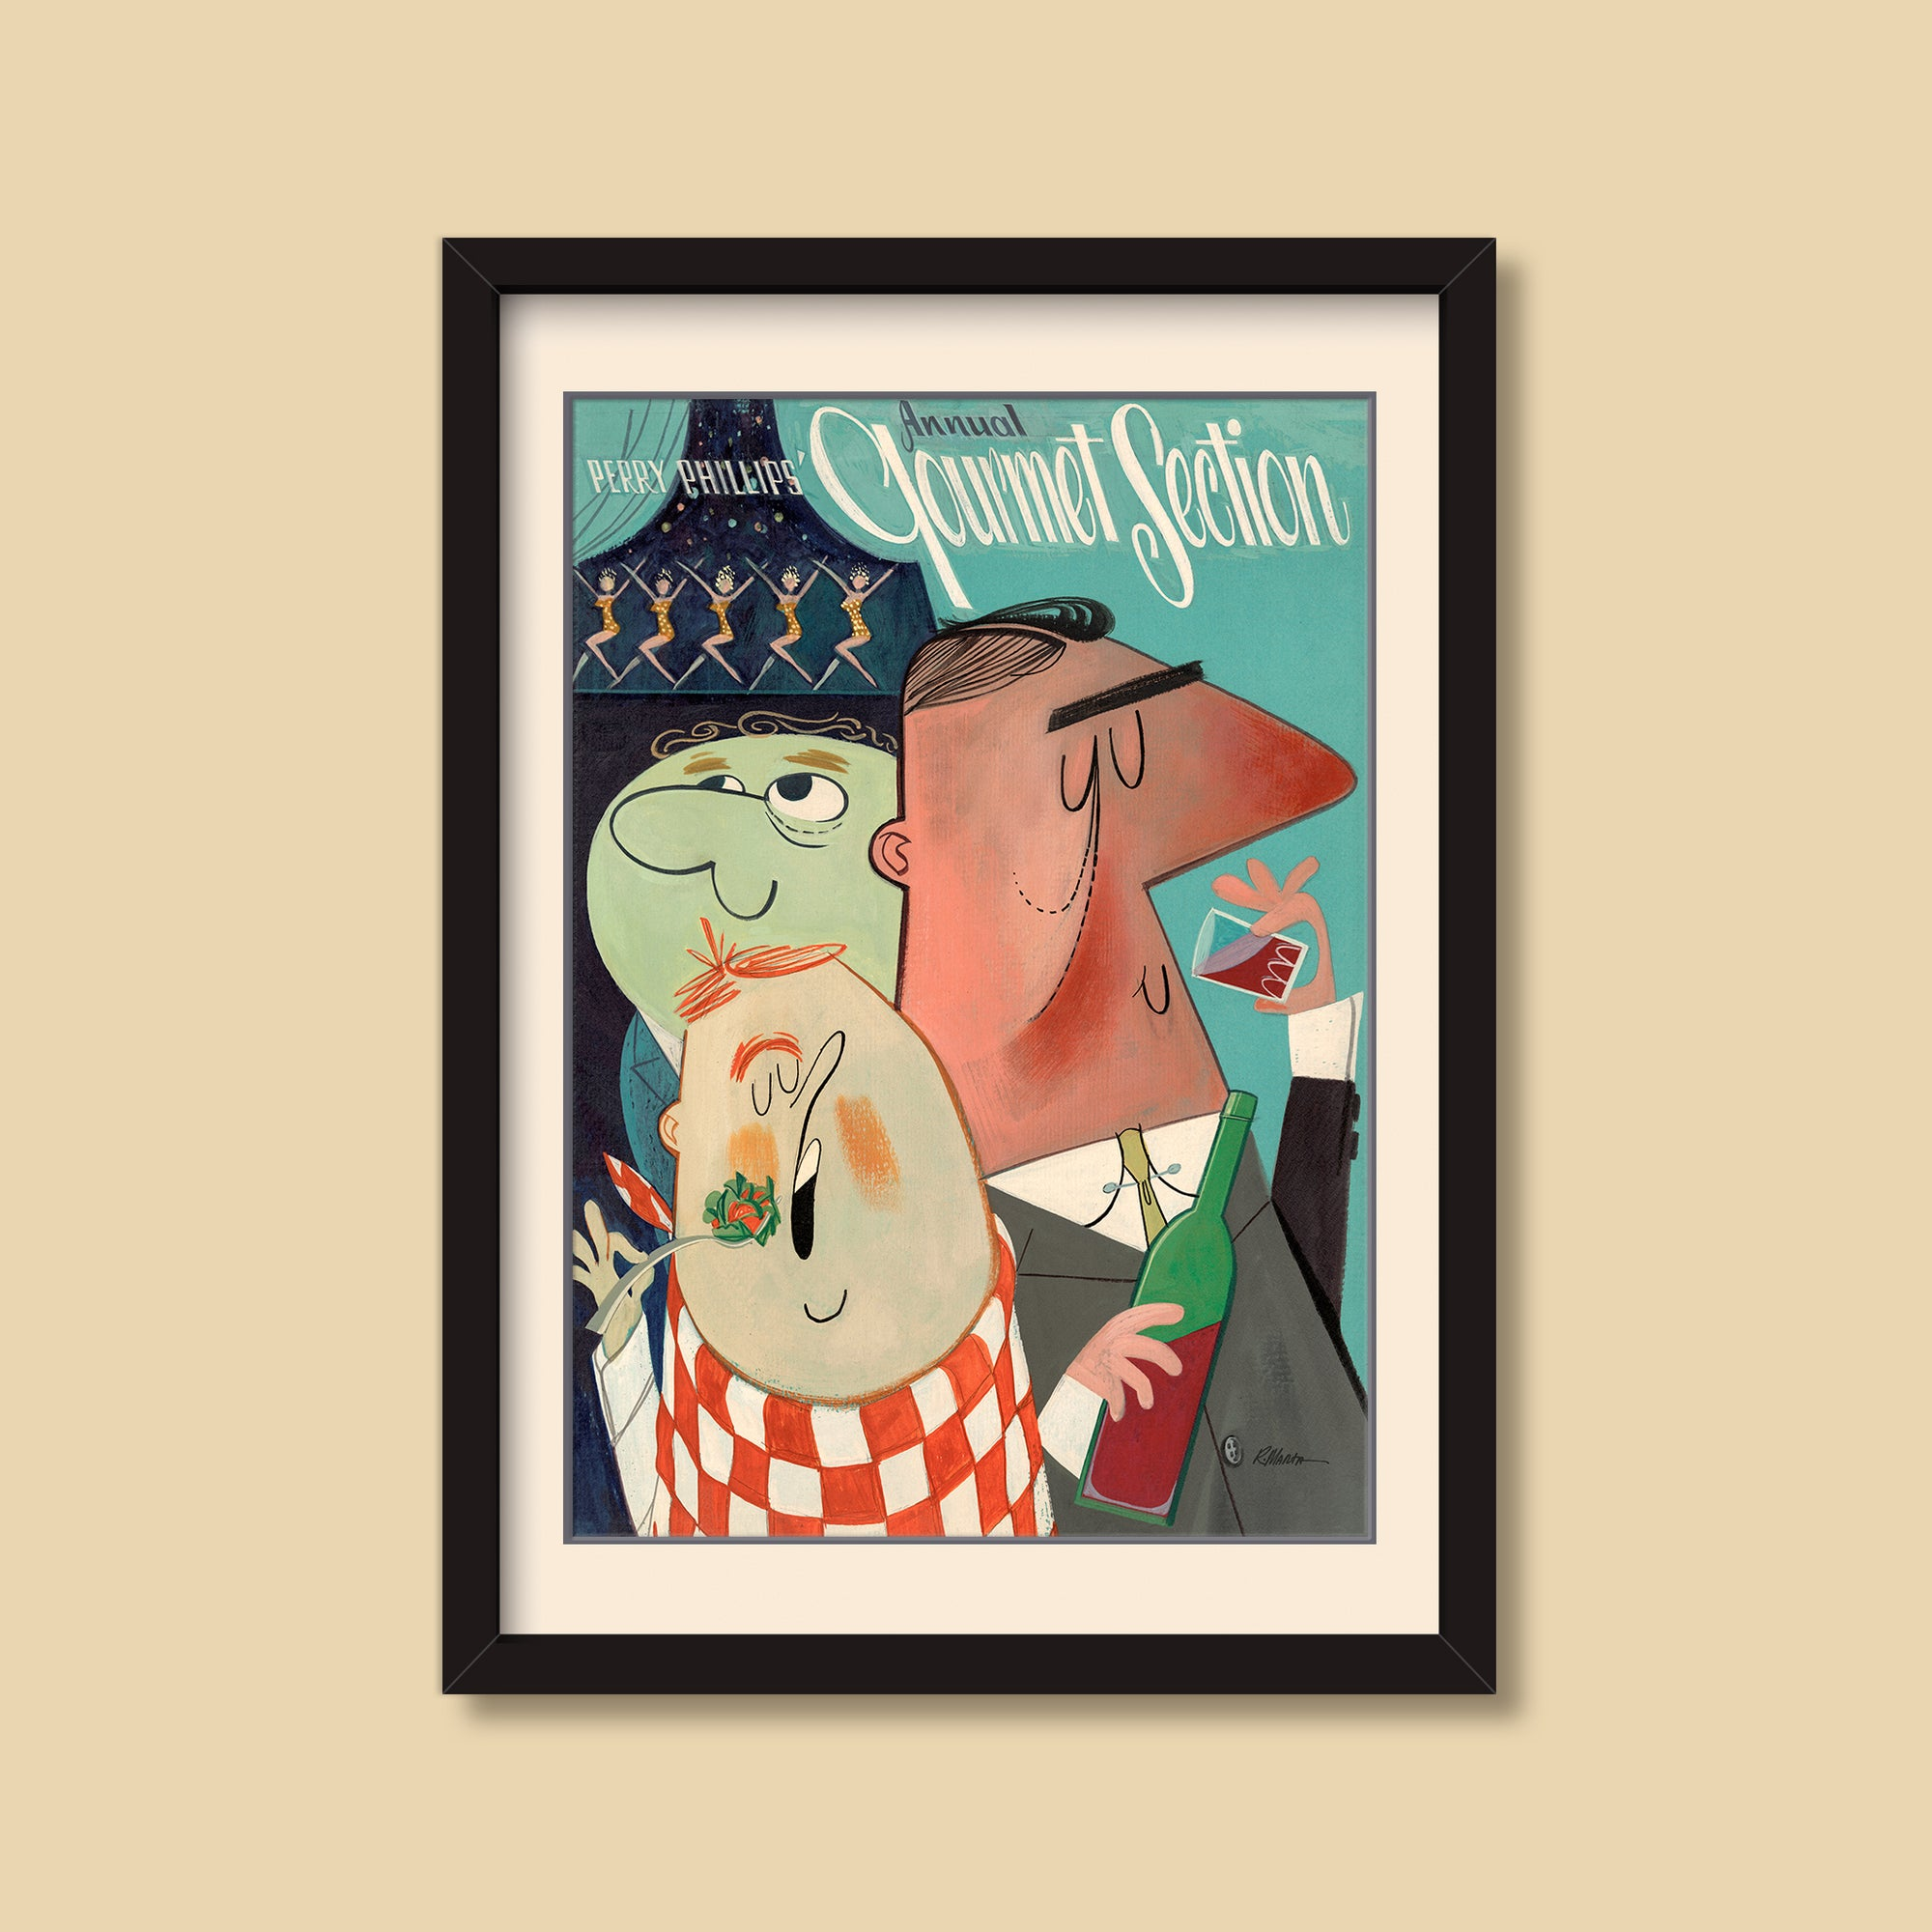 Gourmet Guys — vintage illustration by Ray Marta